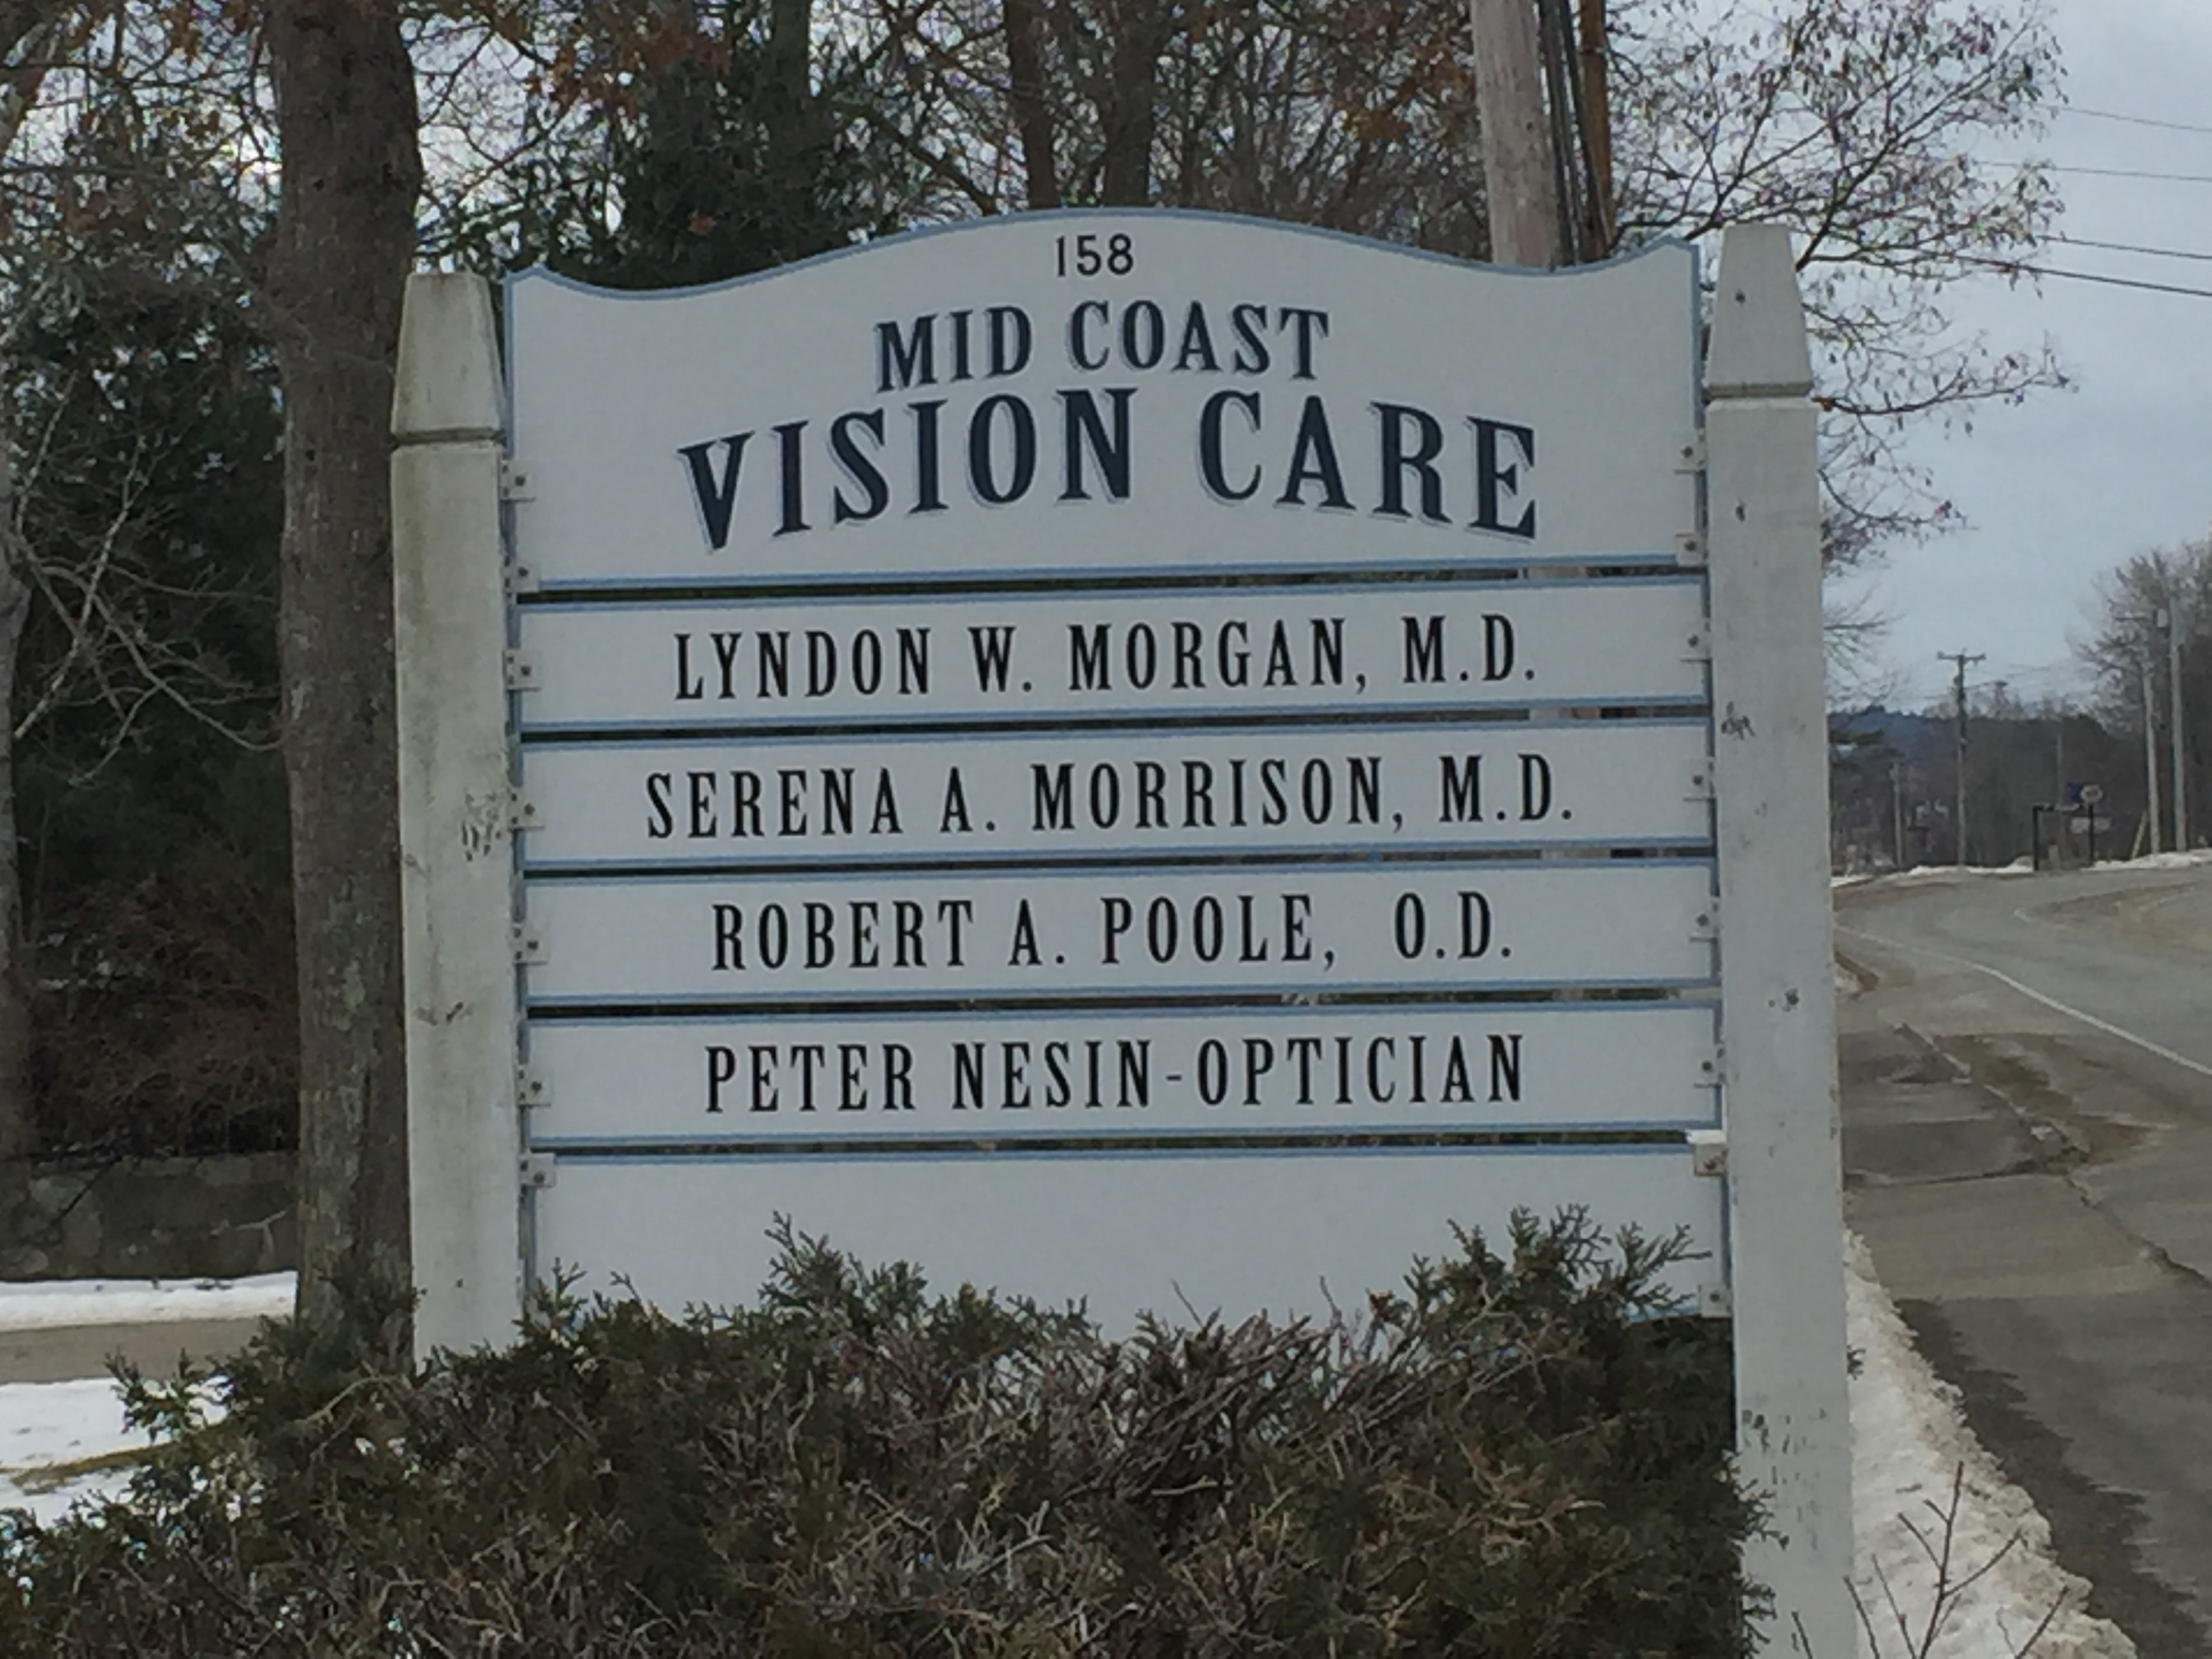 Mid coast vision care Belfast maine